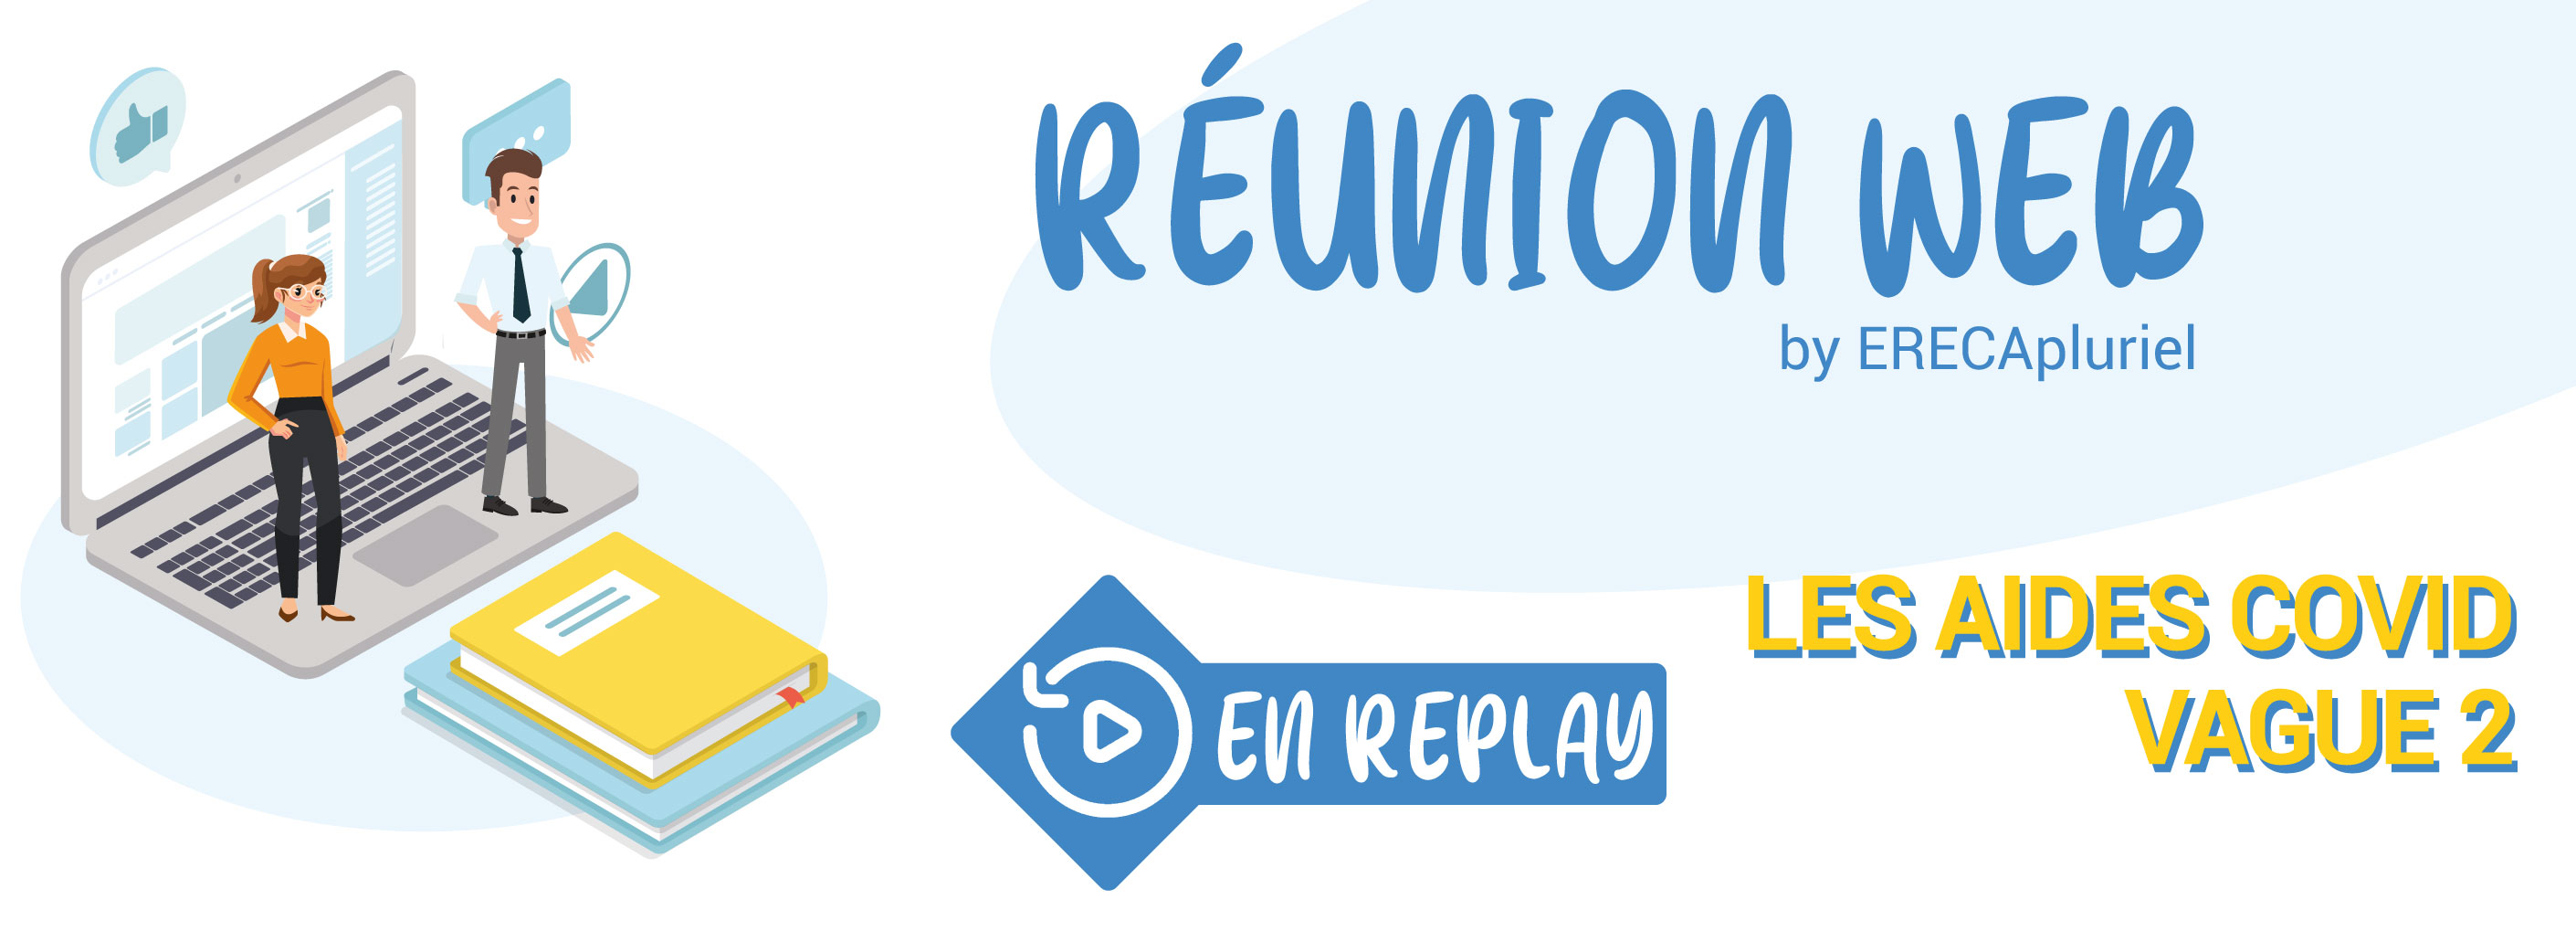 REPLAY Webinaire : Les Aides Covid – Vague 2